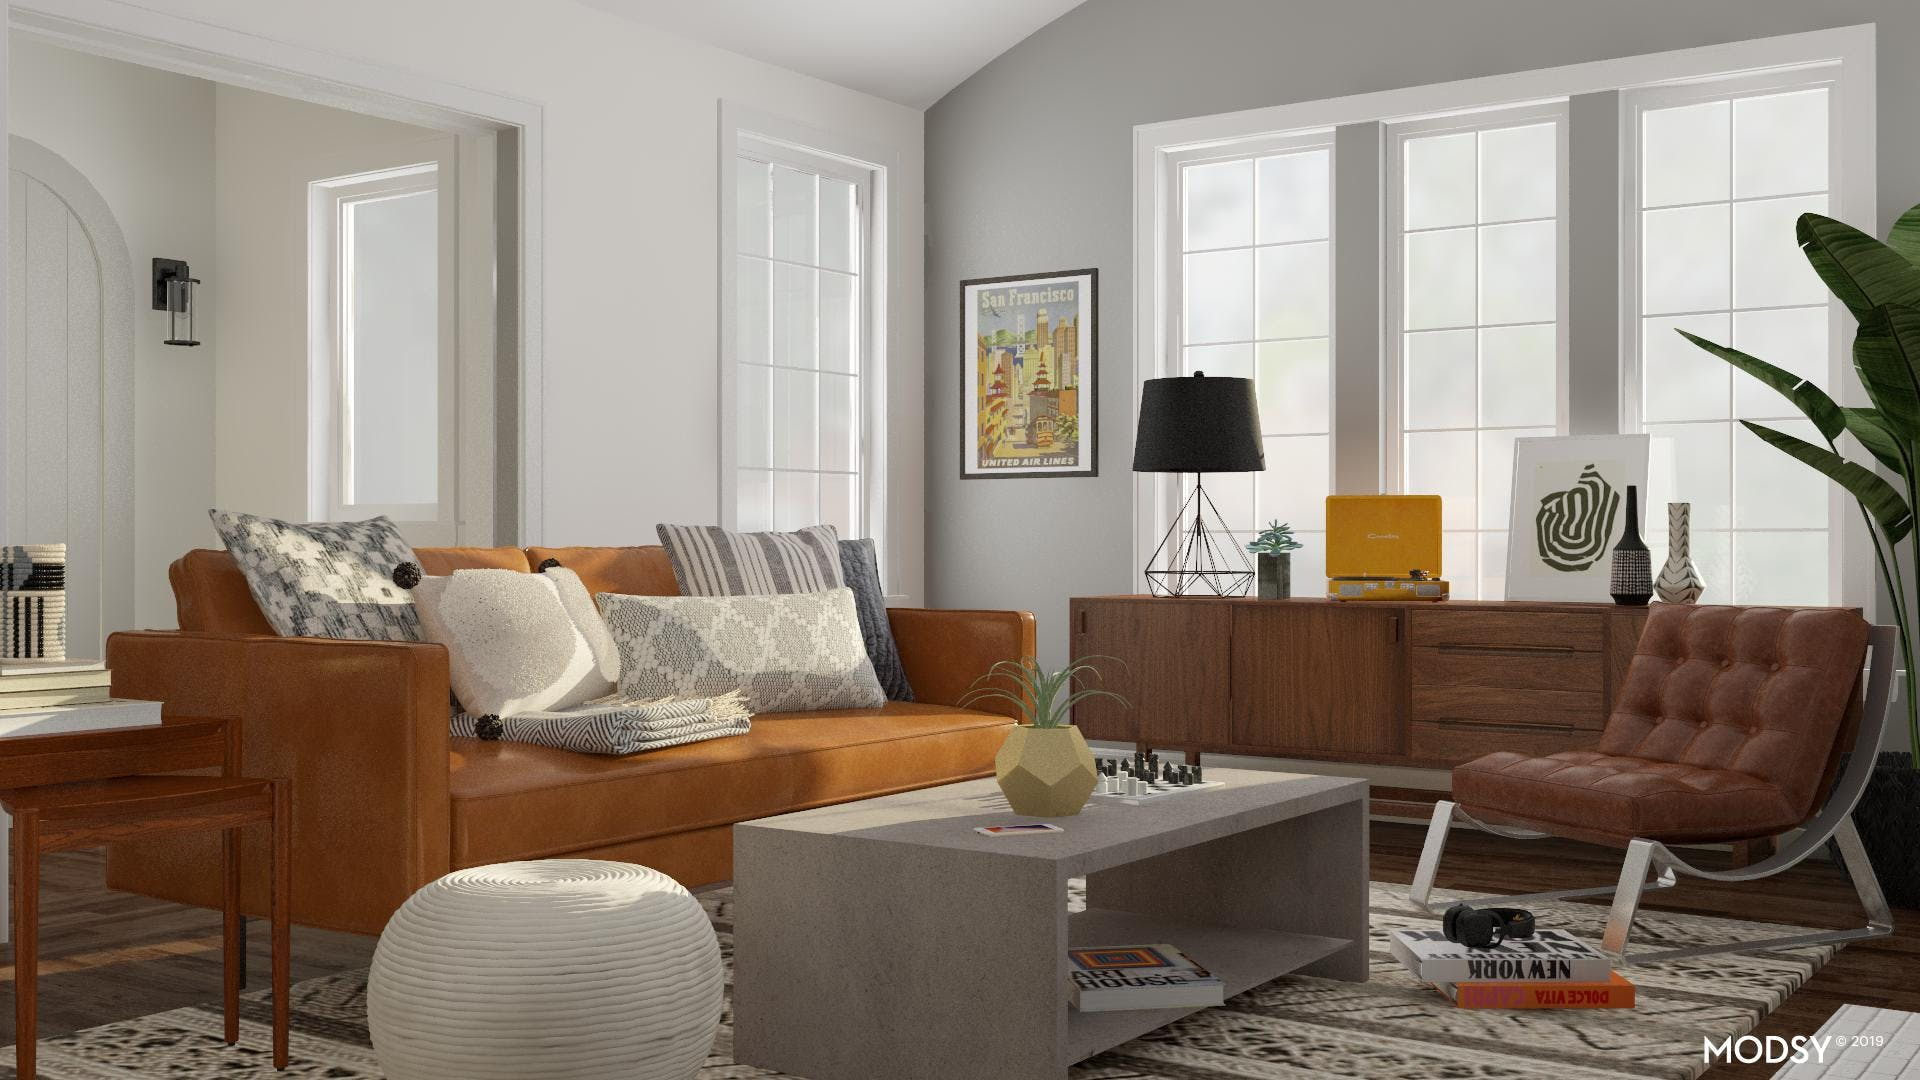 Cool And Collected Mod Living Room